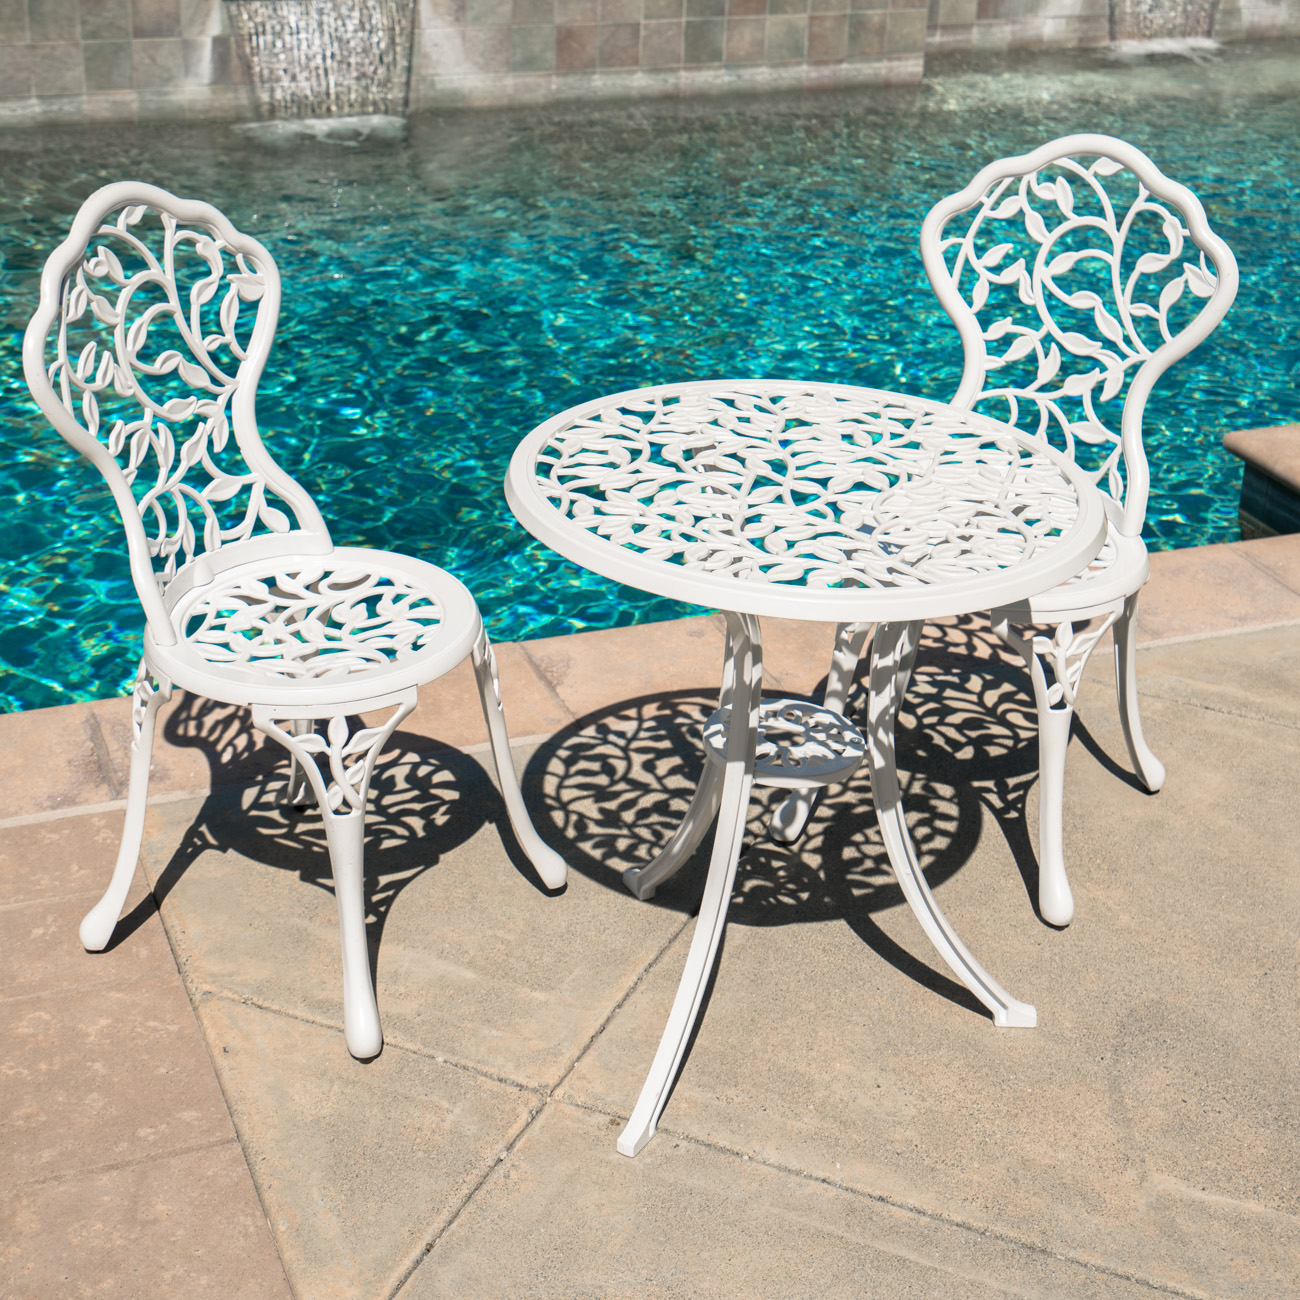 Vintage Garden Table And Chairs Set: 3PC Bistro Set Patio Table Chairs Ivory Furniture Balcony